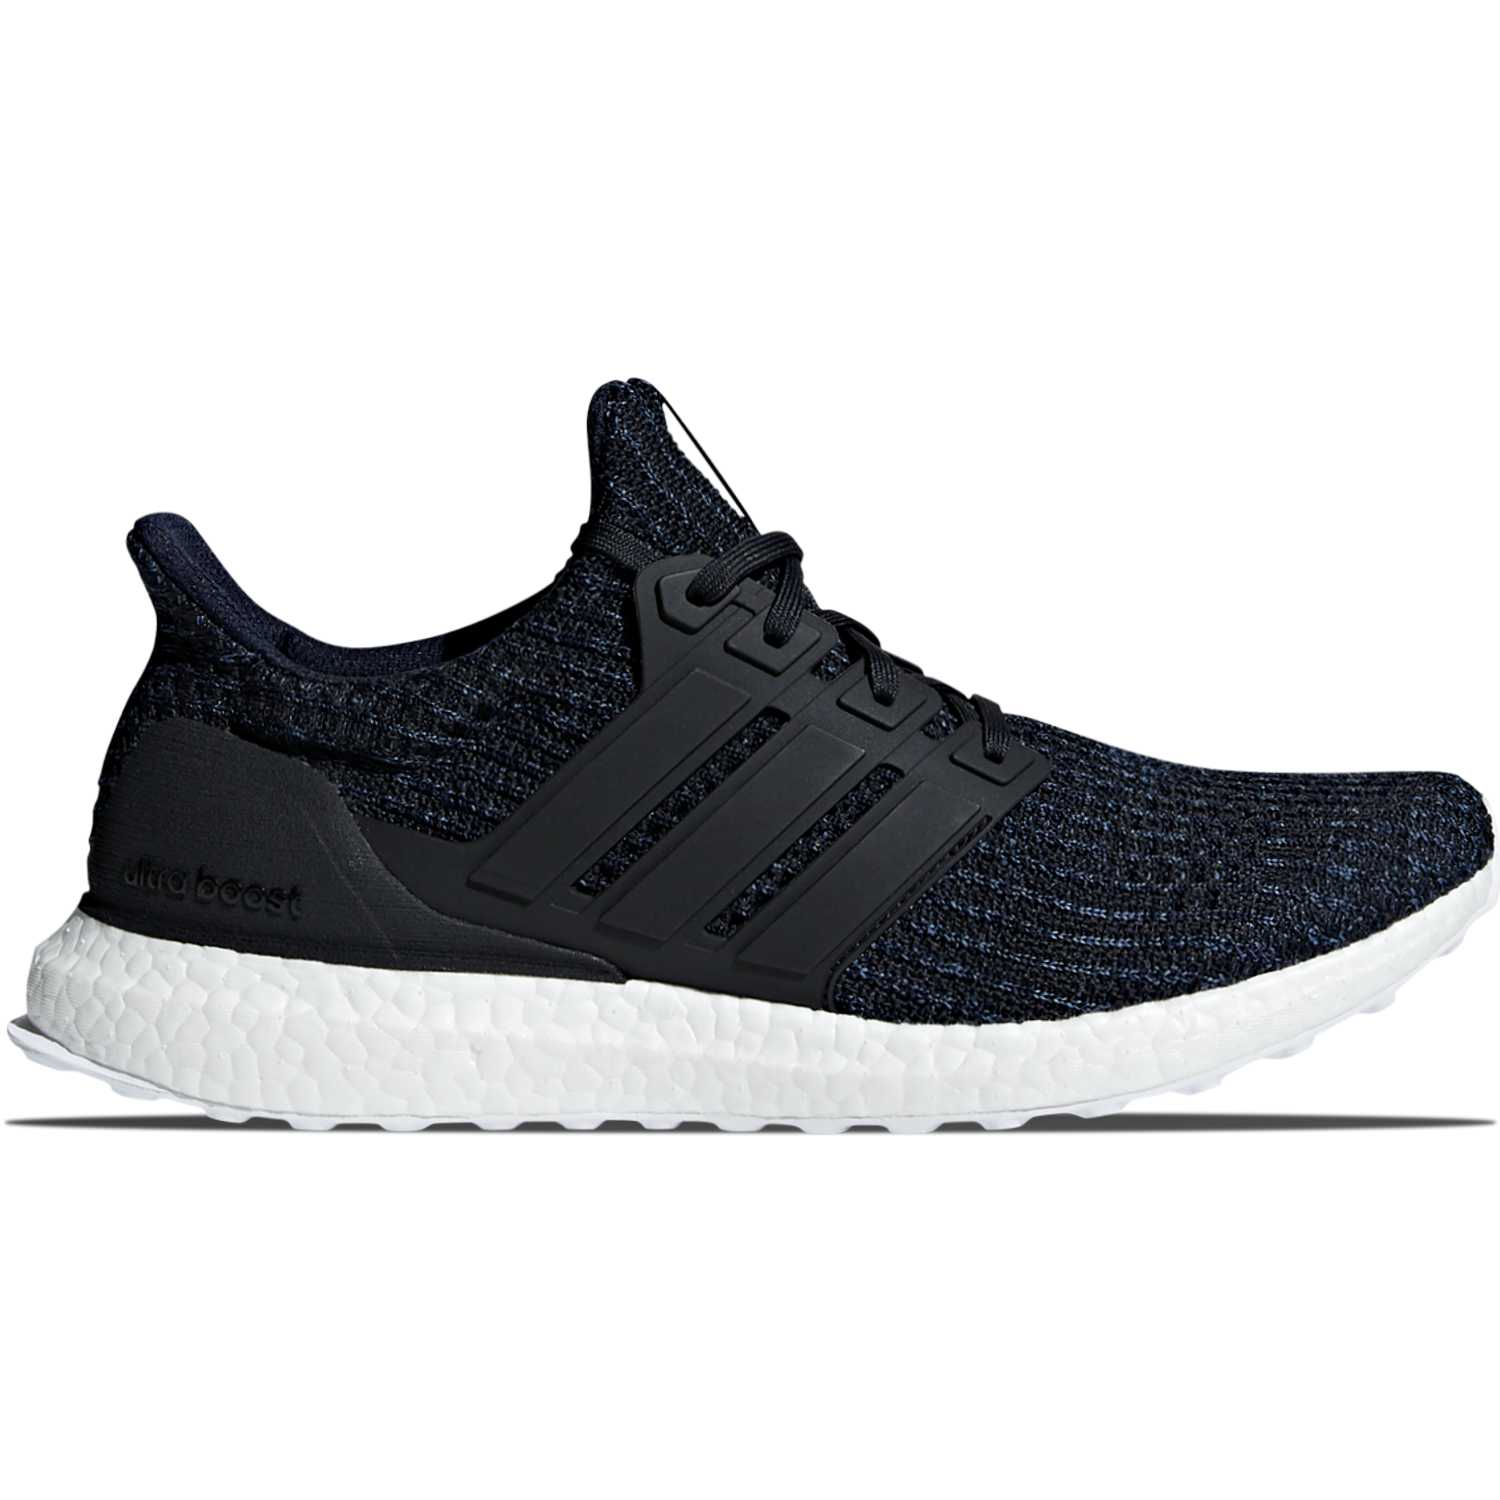 b17d9099693a 7c878b331c75 buty do biegania adidas - cryptodigitalnews.com